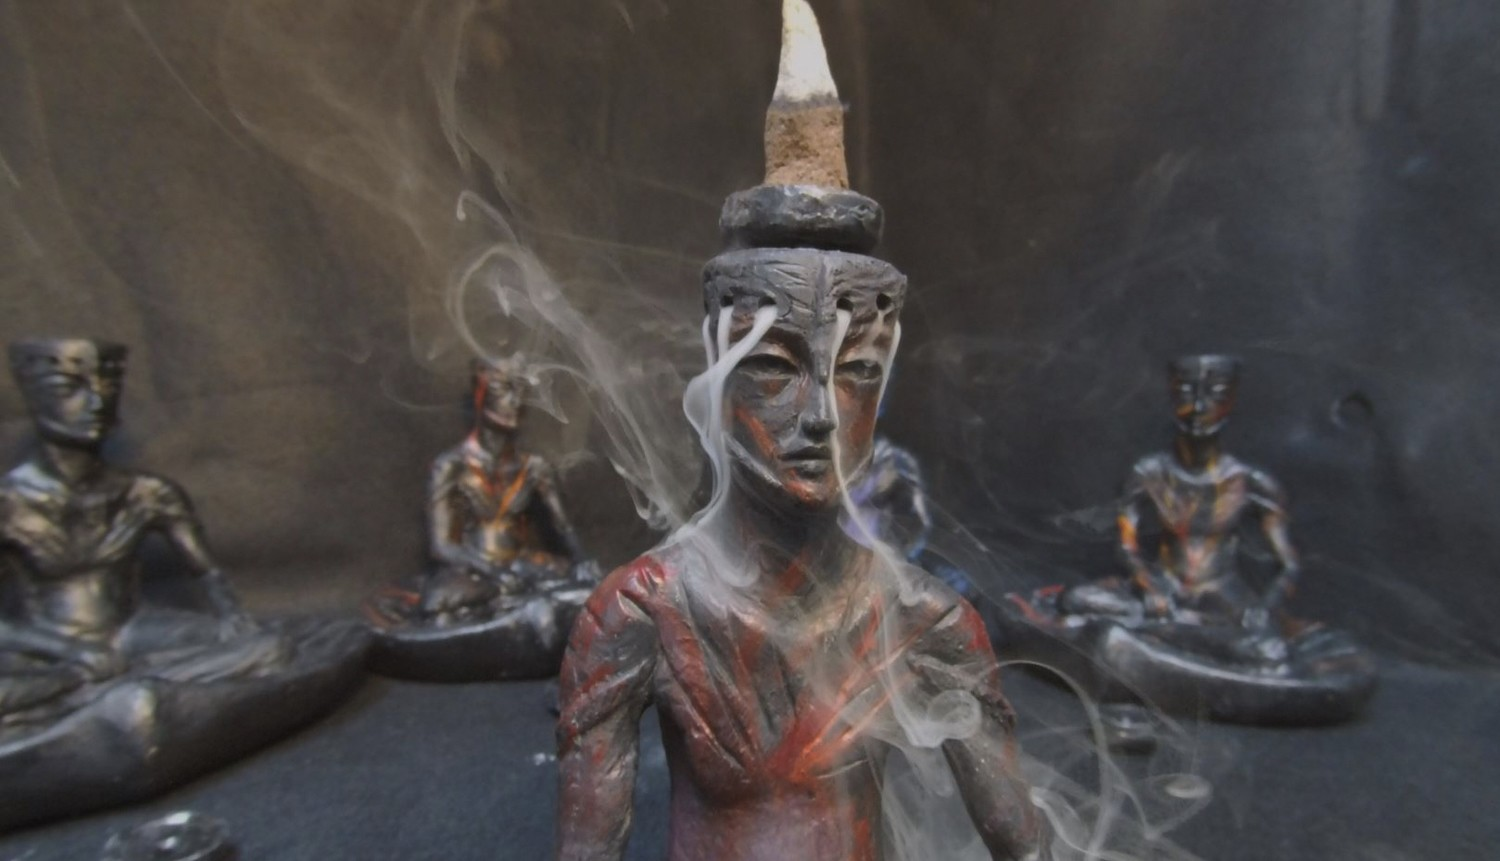 Thinker: Backflow Incense Fountain